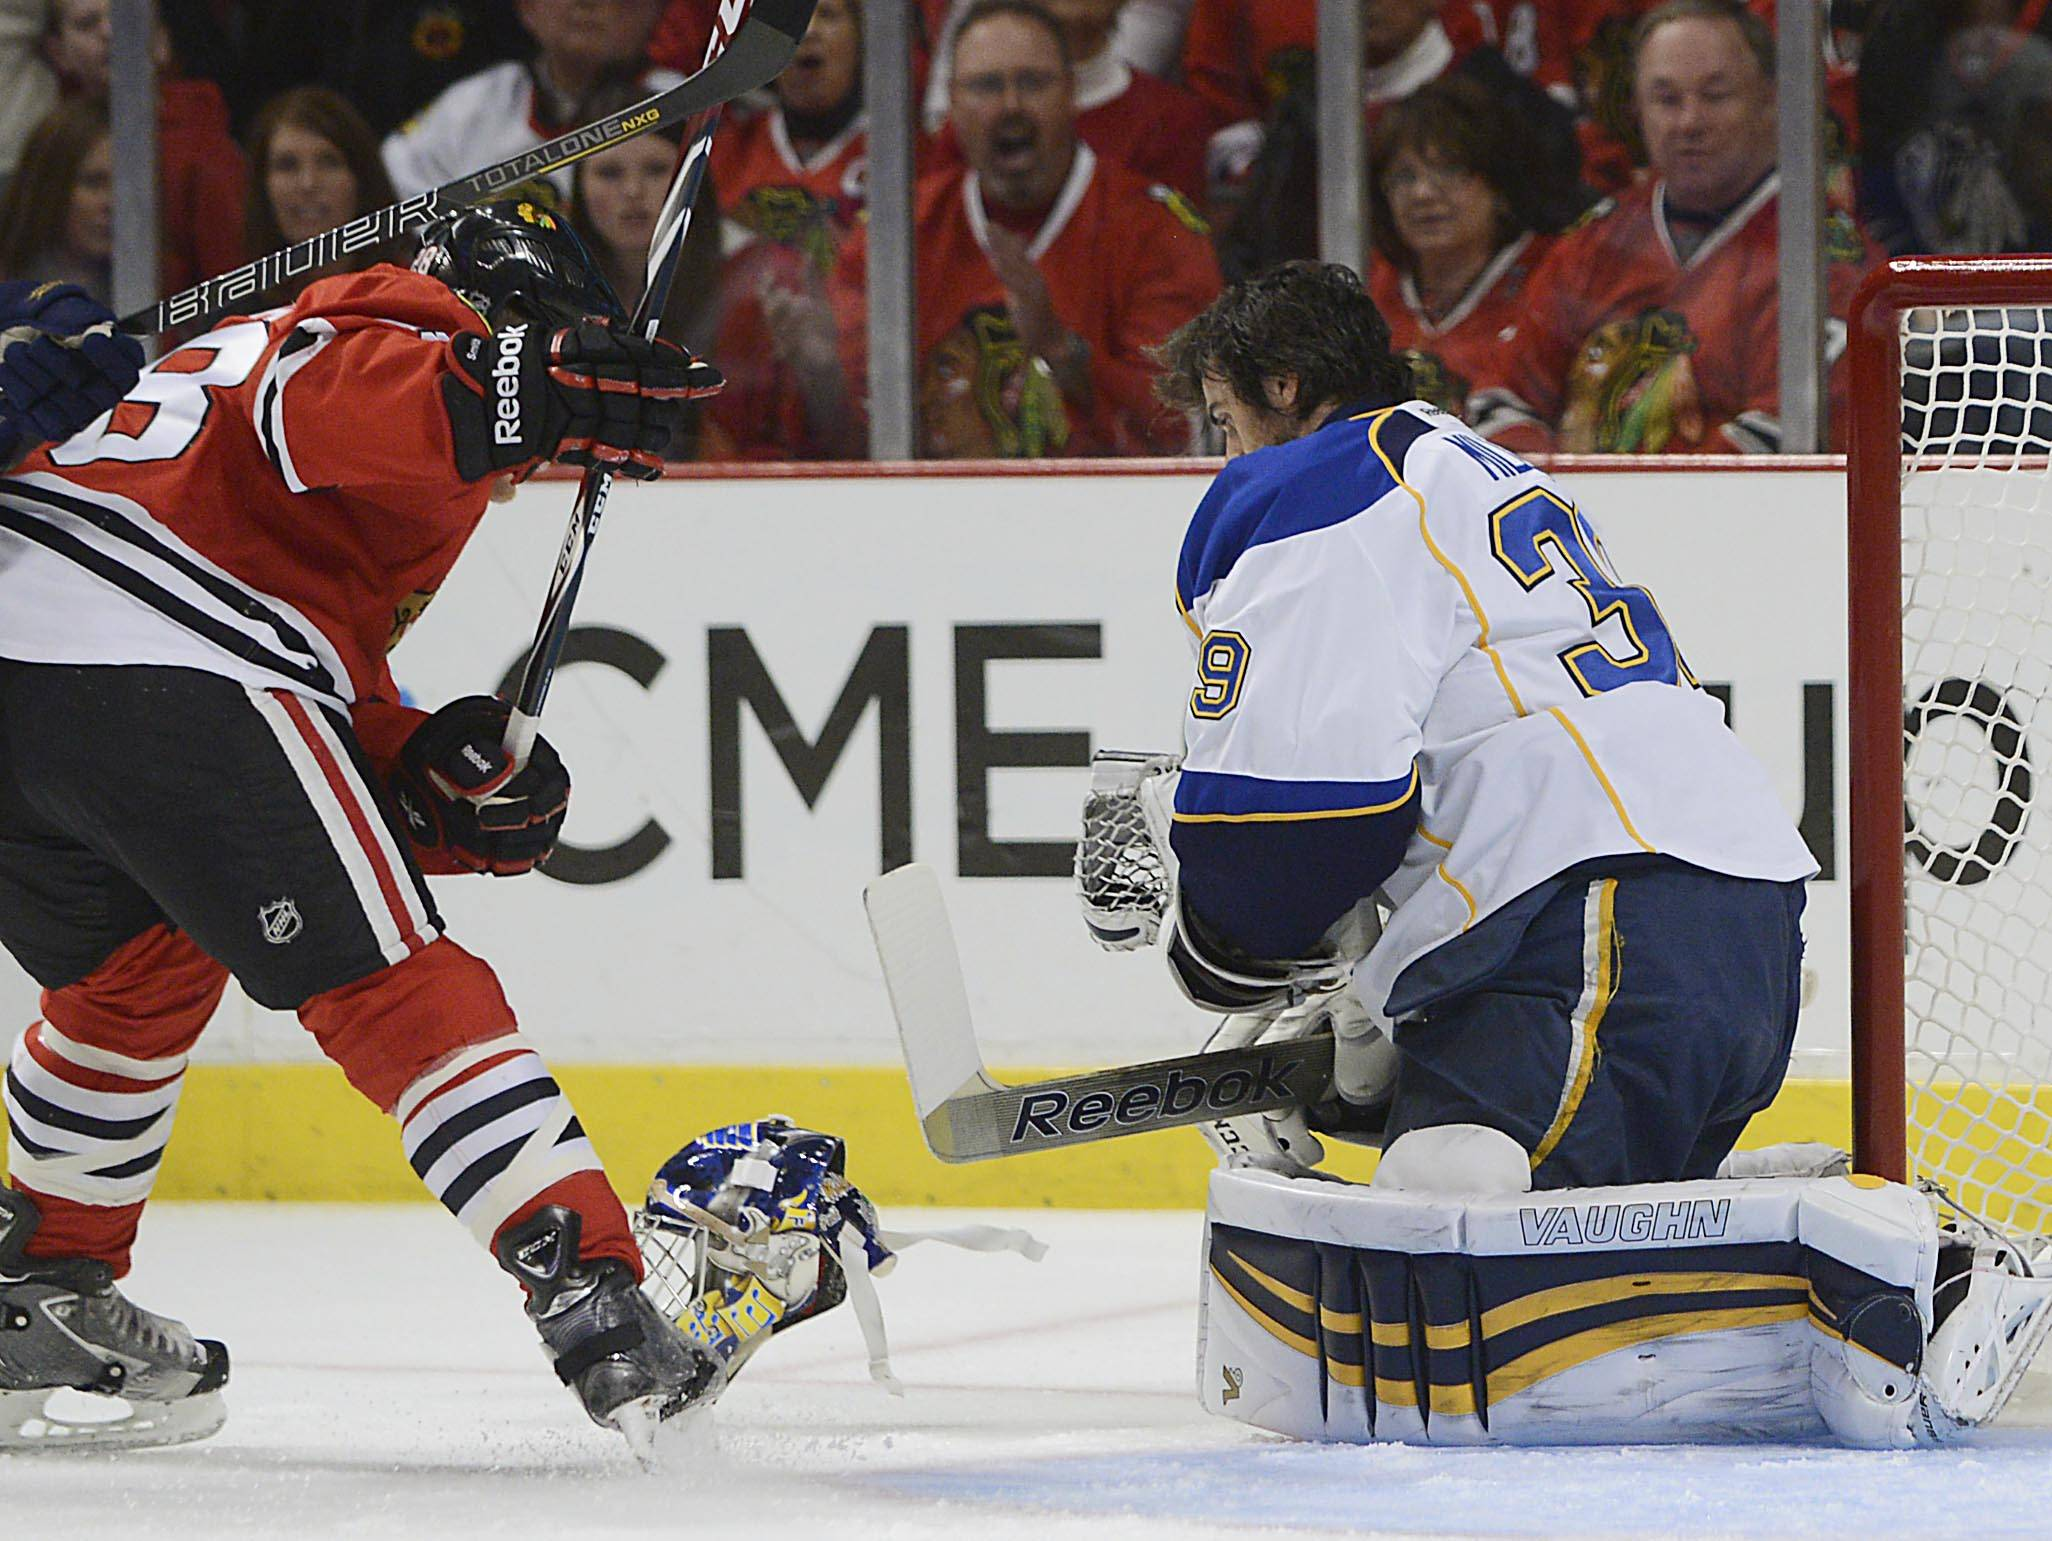 St. Louis Blues goalie Ryan Miller's helmet is knocked off in the first period Sunday in Game 6 of the NHL first round playoffs at the United Center in Chicago.